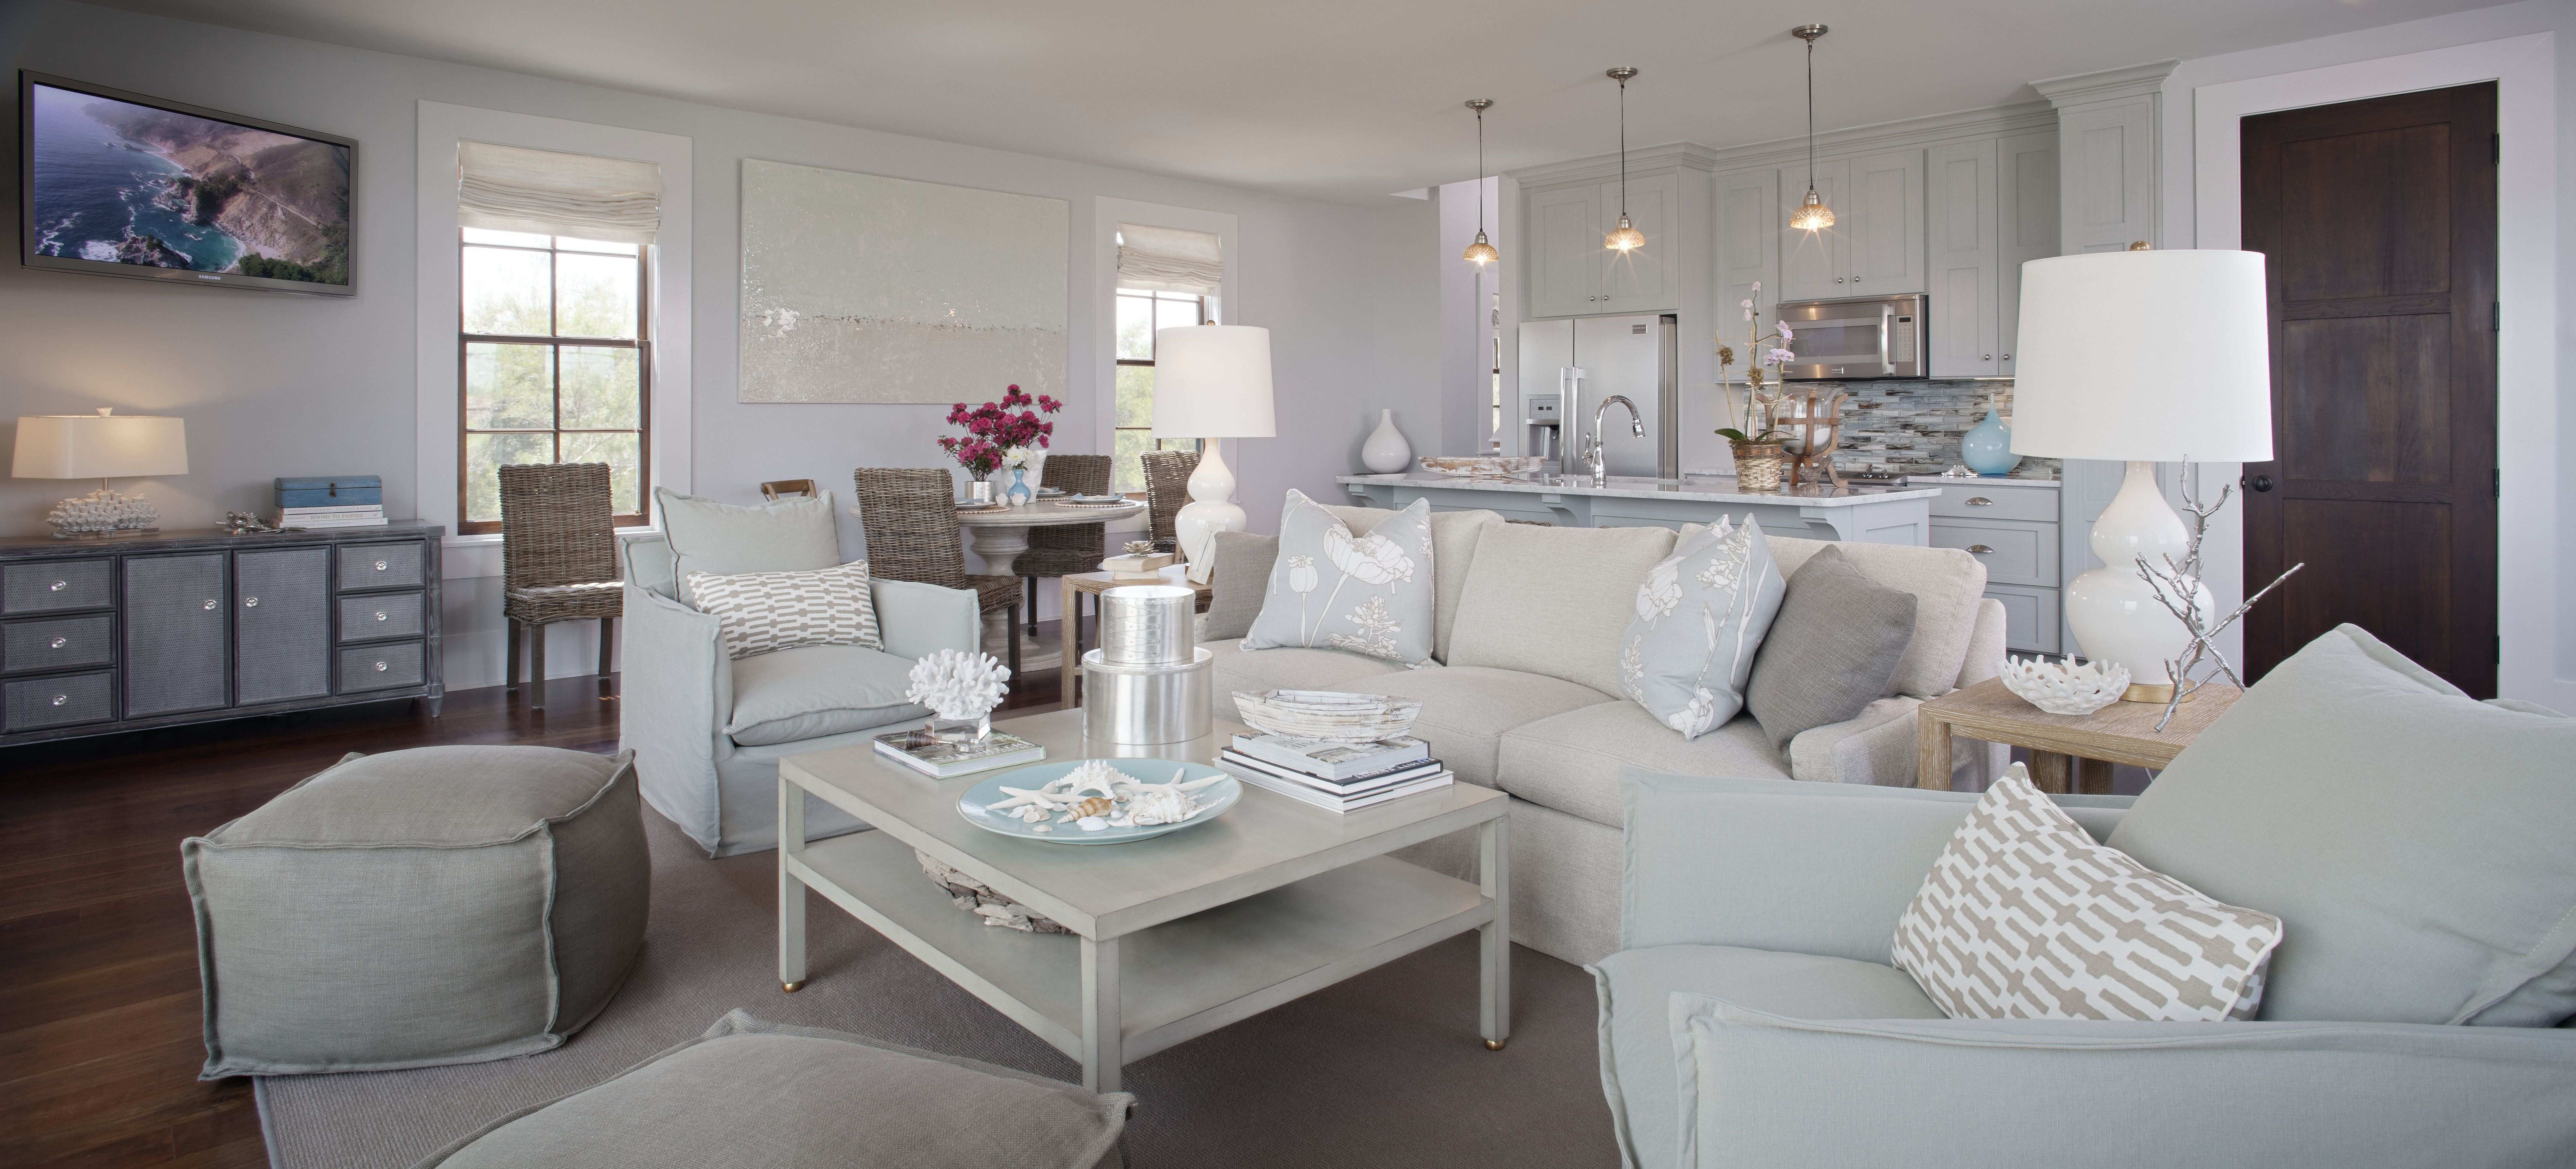 beach cottage living room ideas 91 Pictures In Gallery beachy livingroom Beach